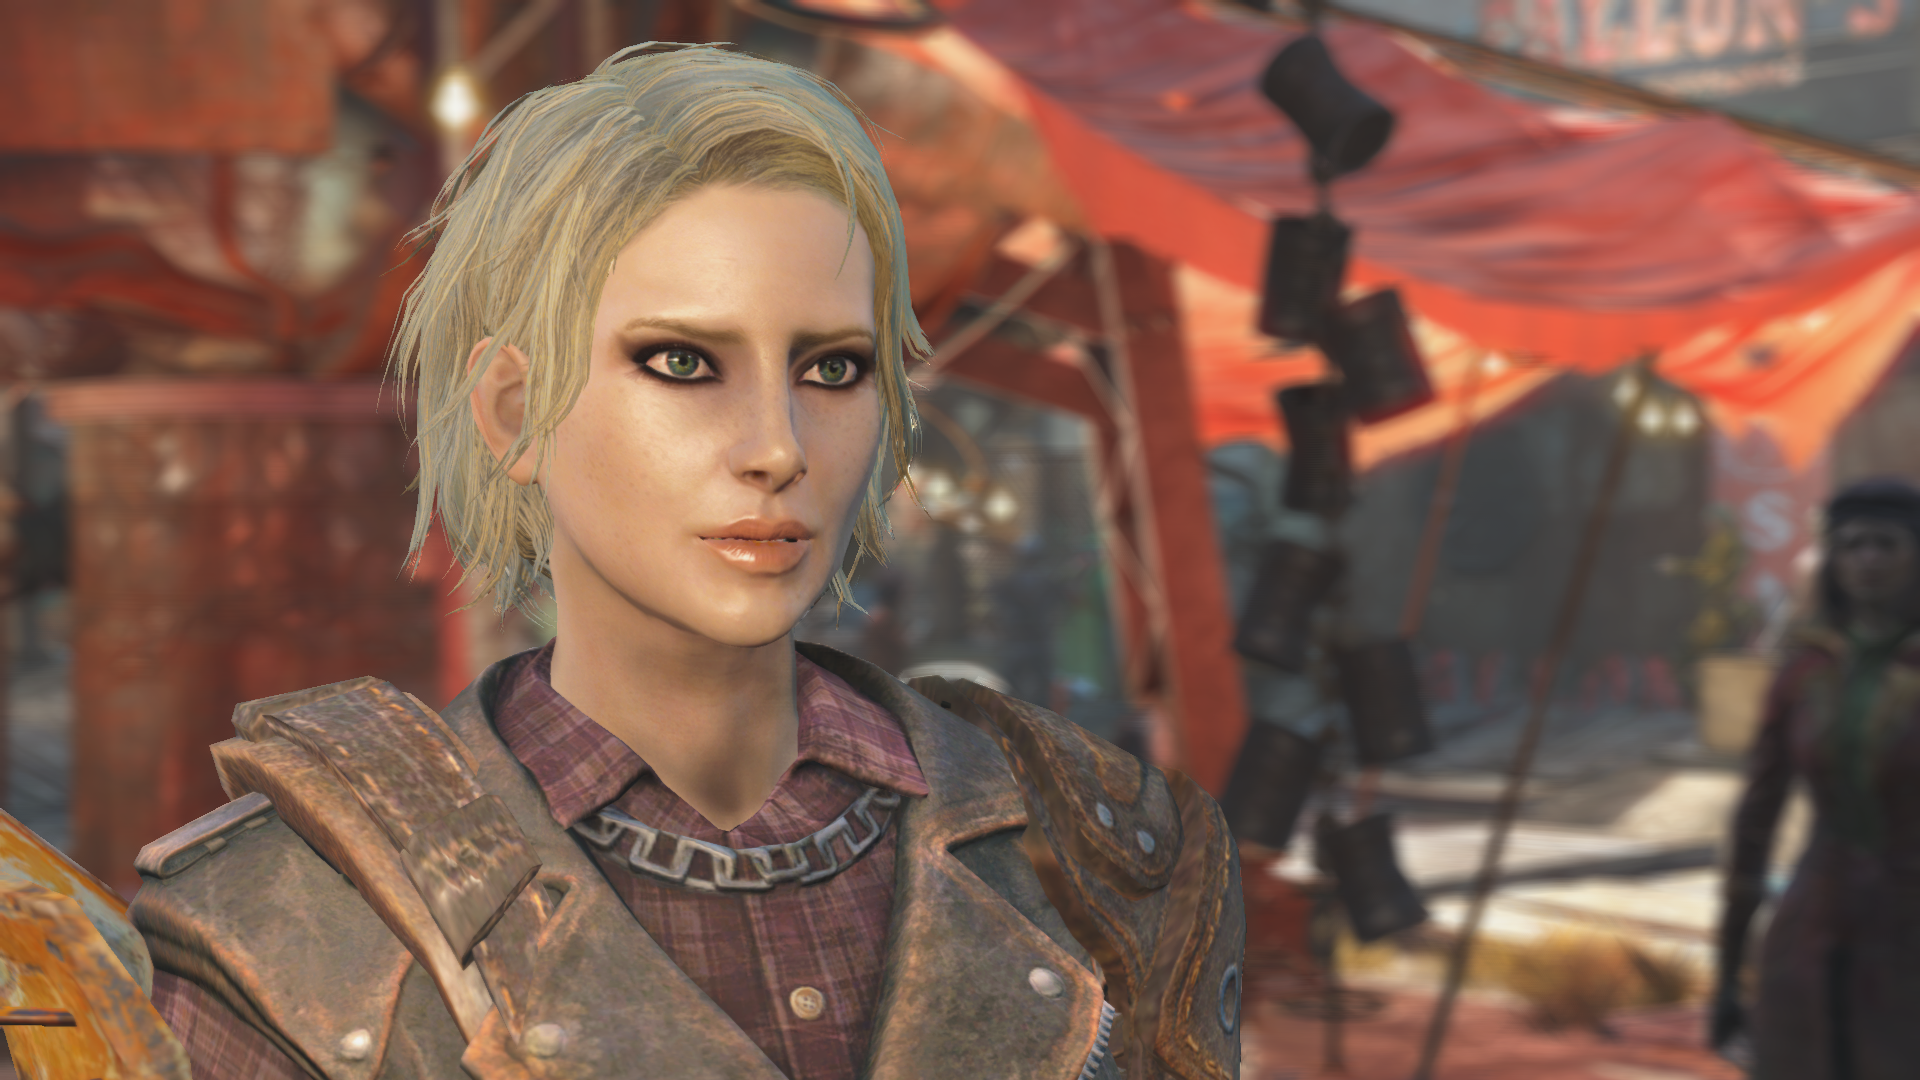 Show us your Fallout 4 character here | NeoGAF